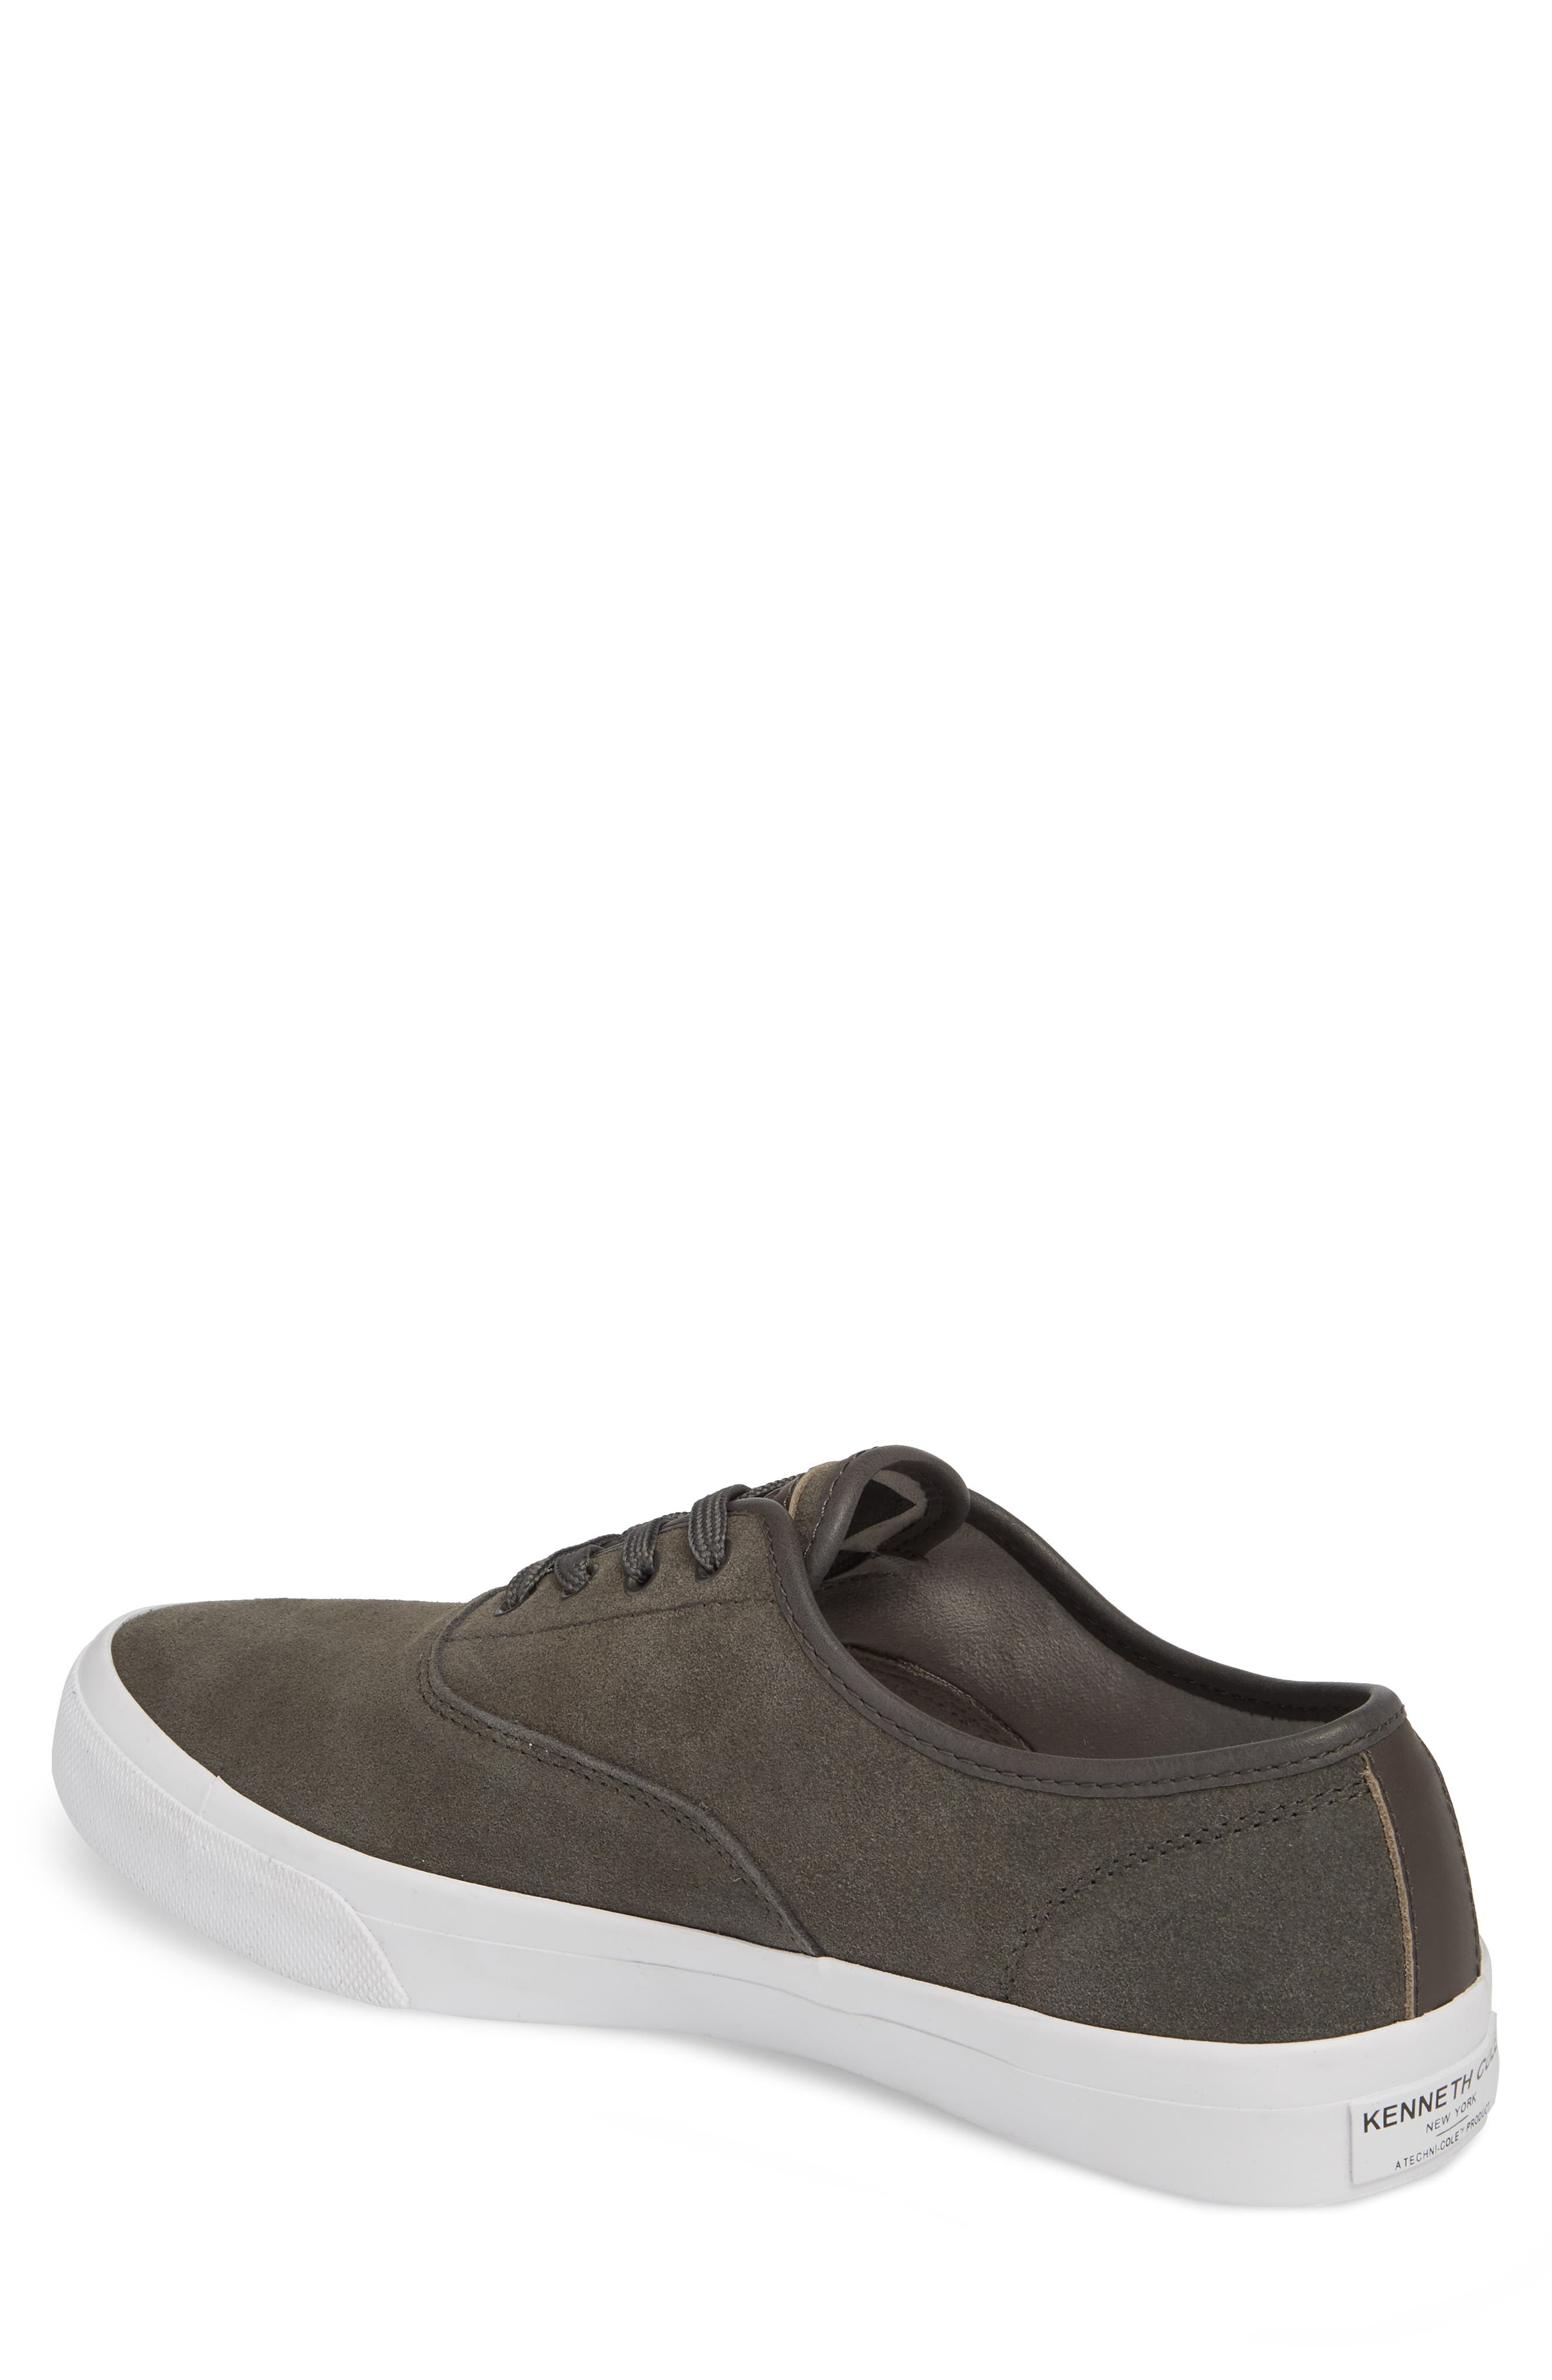 Toor Low Top Sneaker,                             Alternate thumbnail 2, color,                             GREY COMBO SUEDE